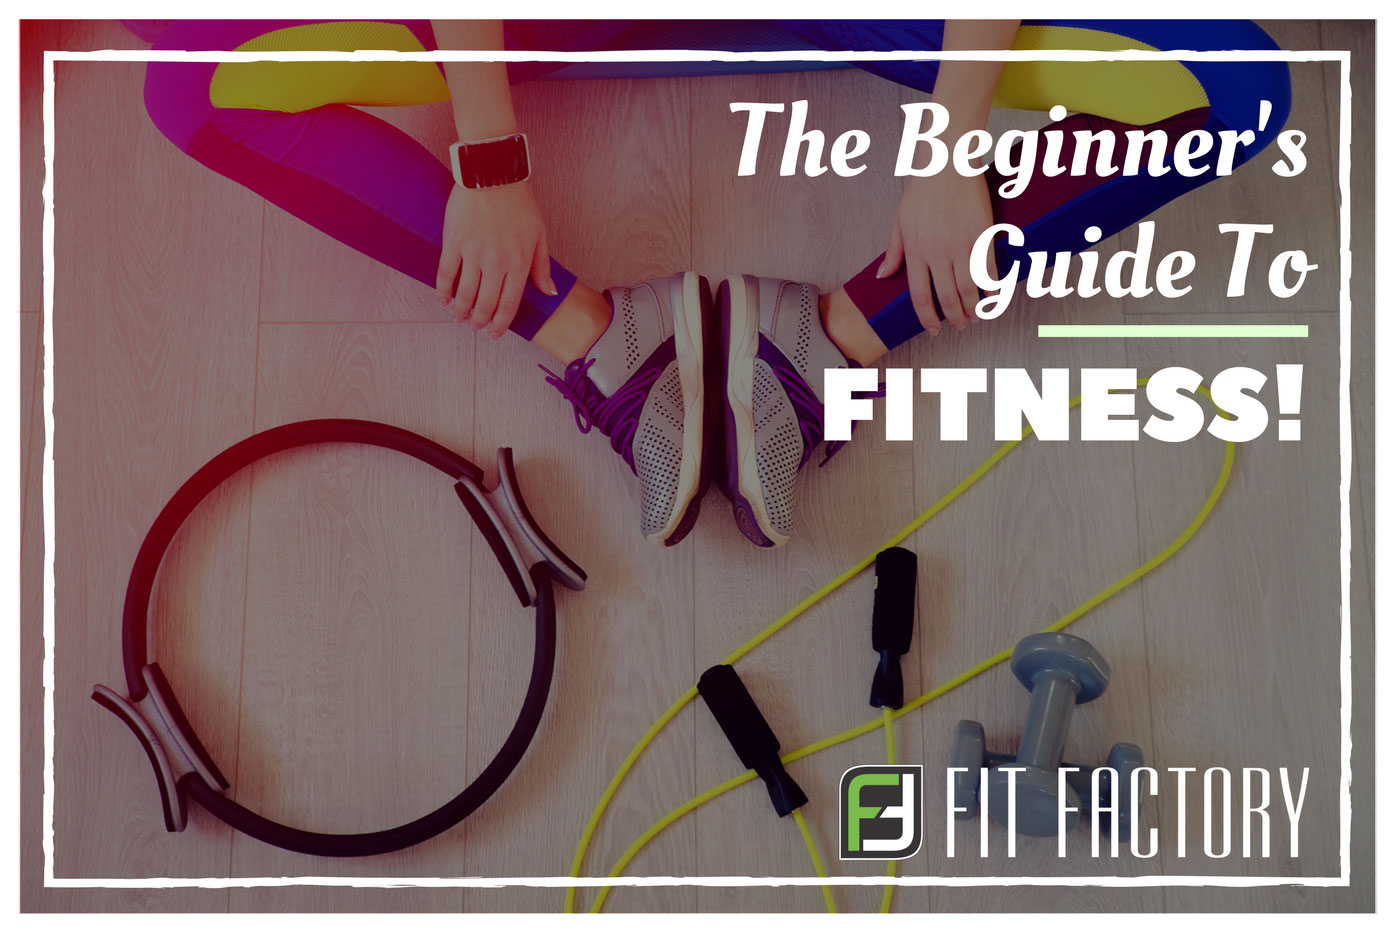 The Beginner's Guide To Fitness